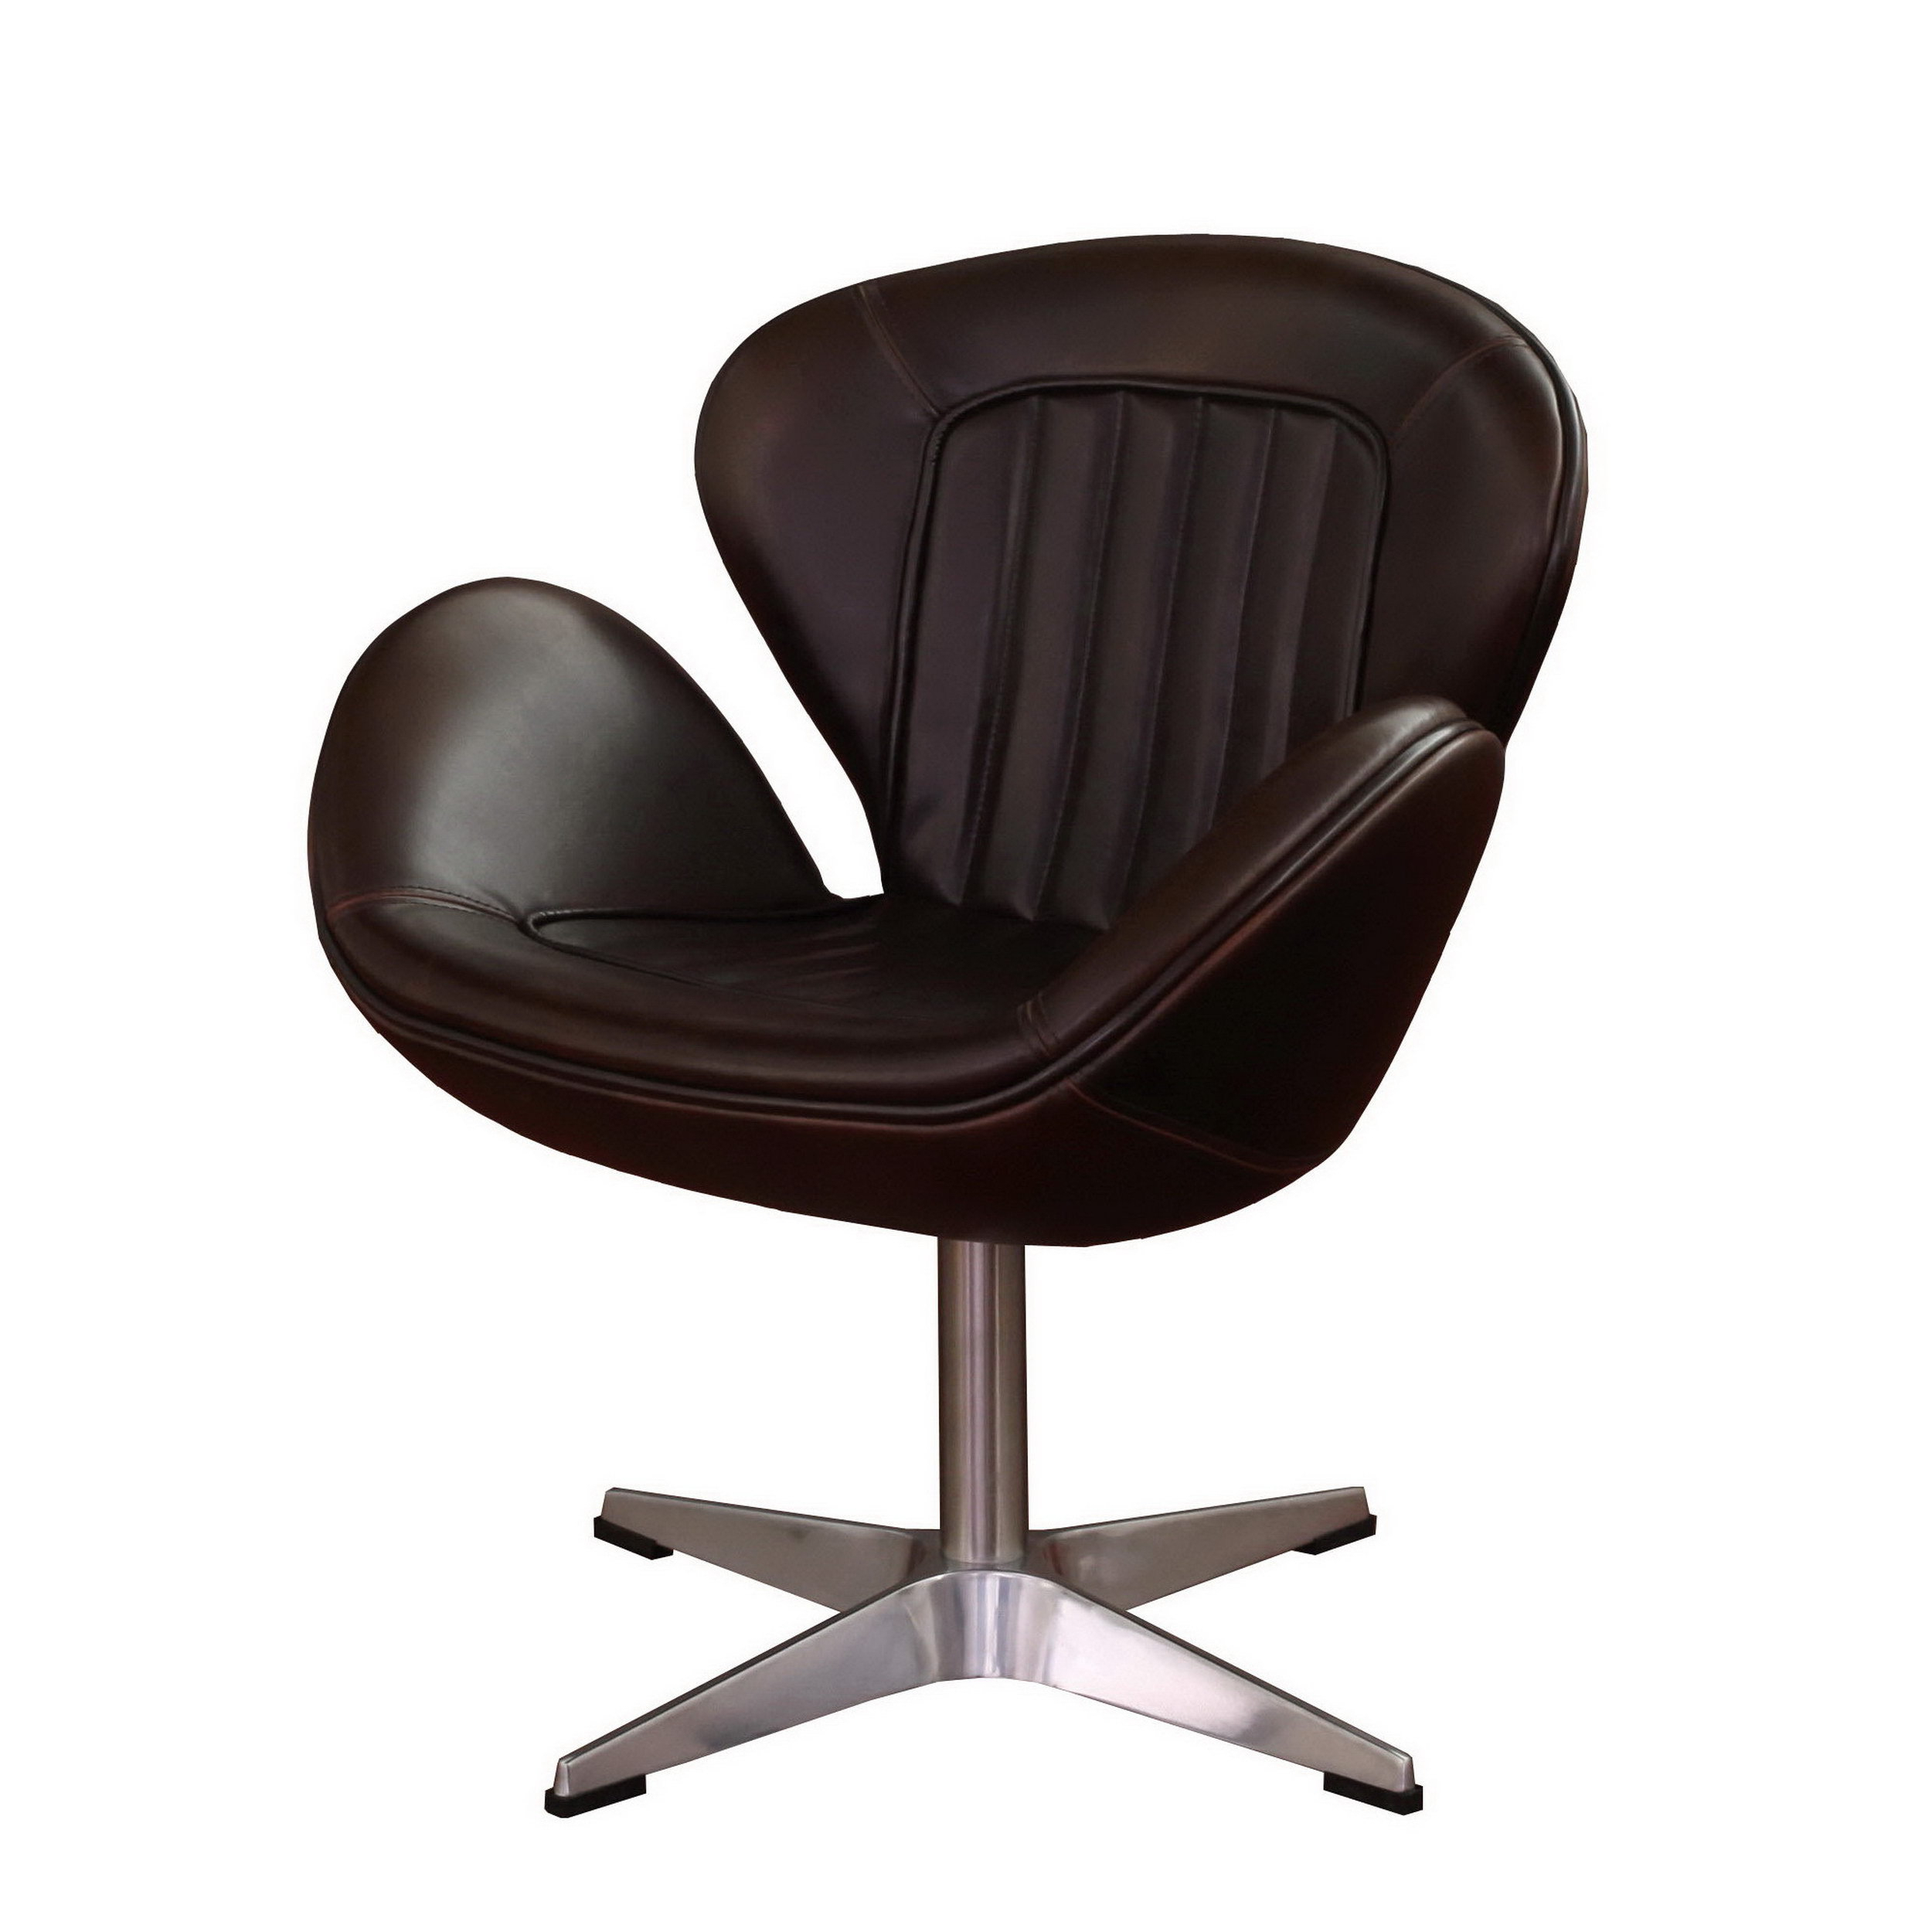 Shop Amelia Vintage Tobacco Leather Swivel Chair – Free Shipping Regarding Most Popular Swivel Tobacco Leather Chairs (Gallery 6 of 20)